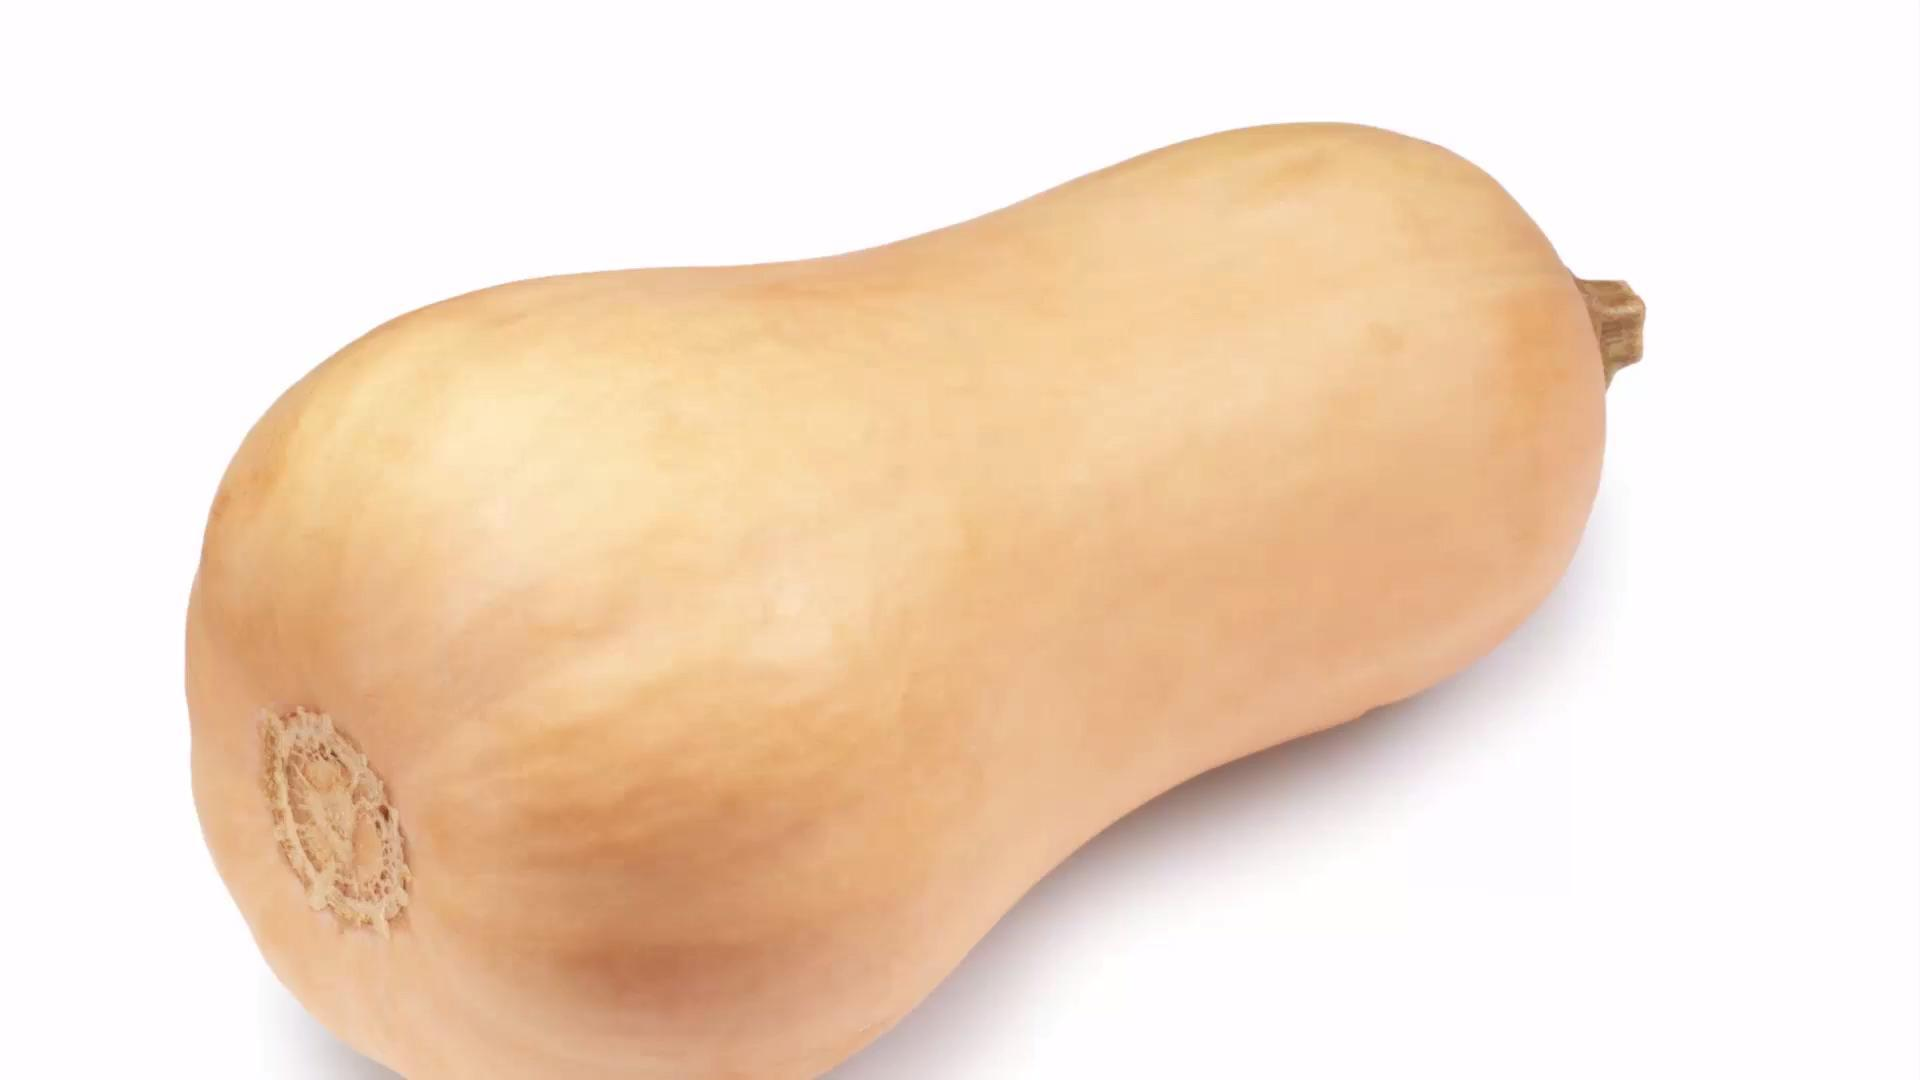 Does Peeling Butternut Squash Make Your Hands Feel Weird? Here's Why.